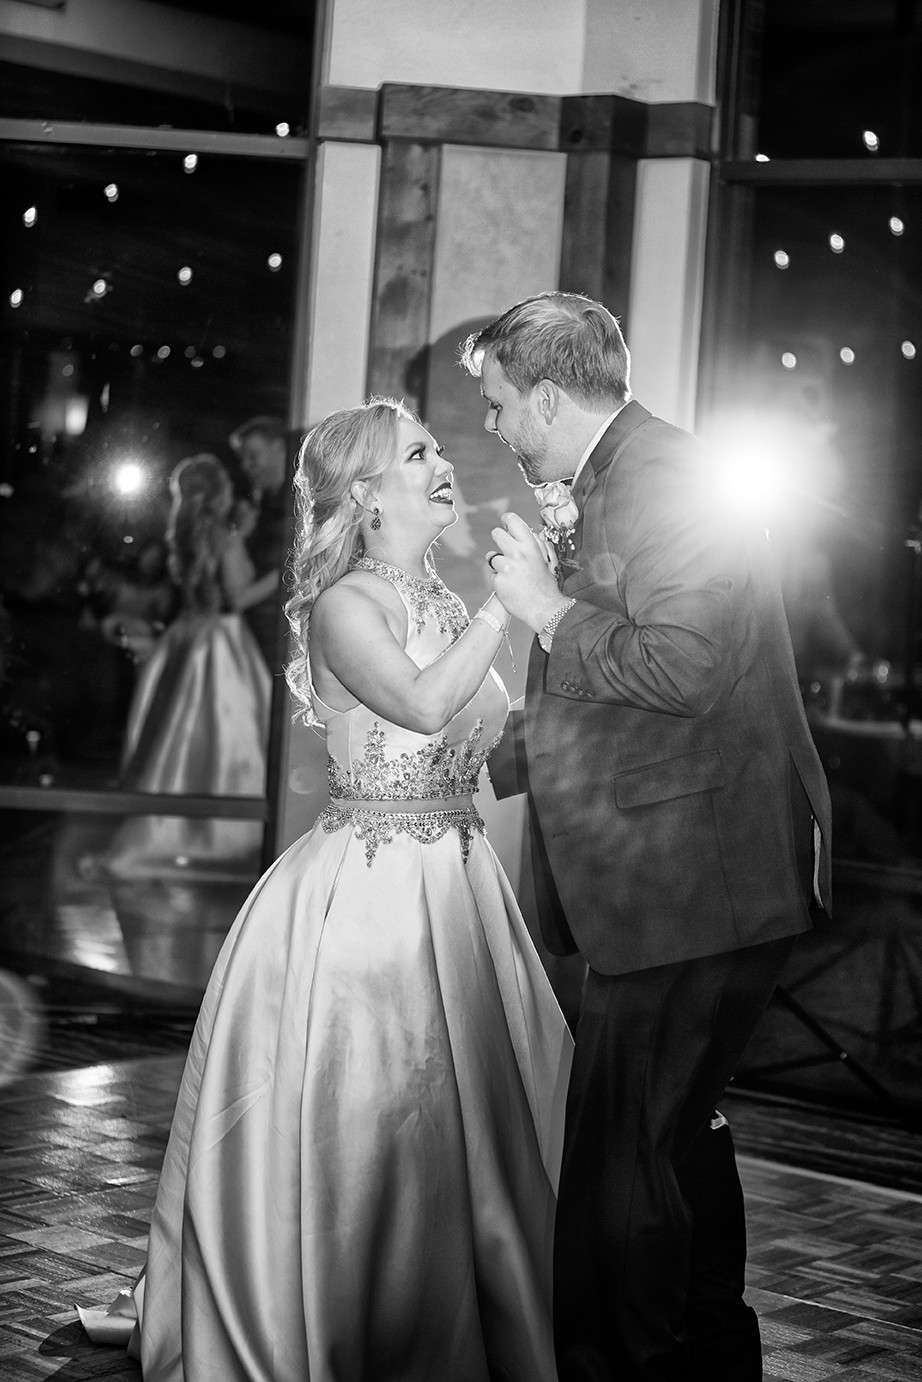 backlit off camera flash creates a flare during a first dance